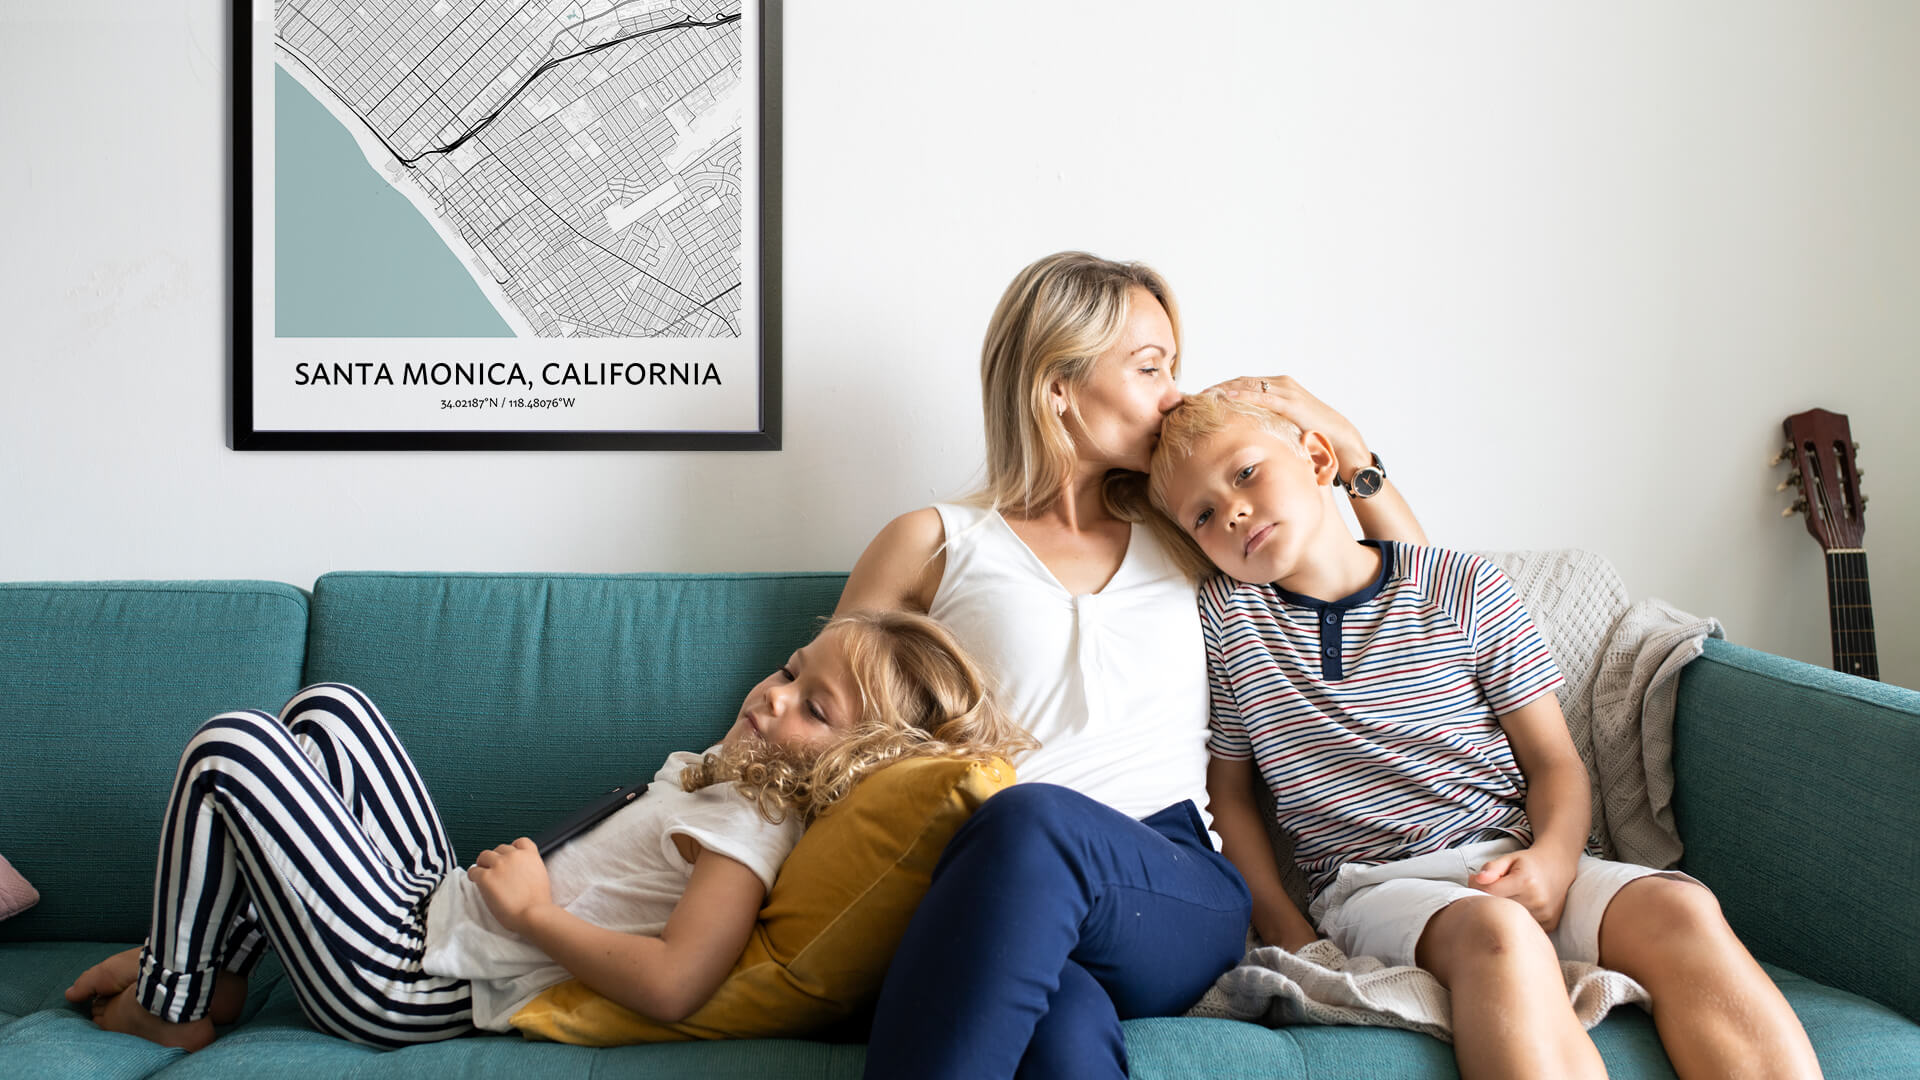 If you have a flair for the unique and unexpected, then you'll love giving a Santa Monica map print as a gift!